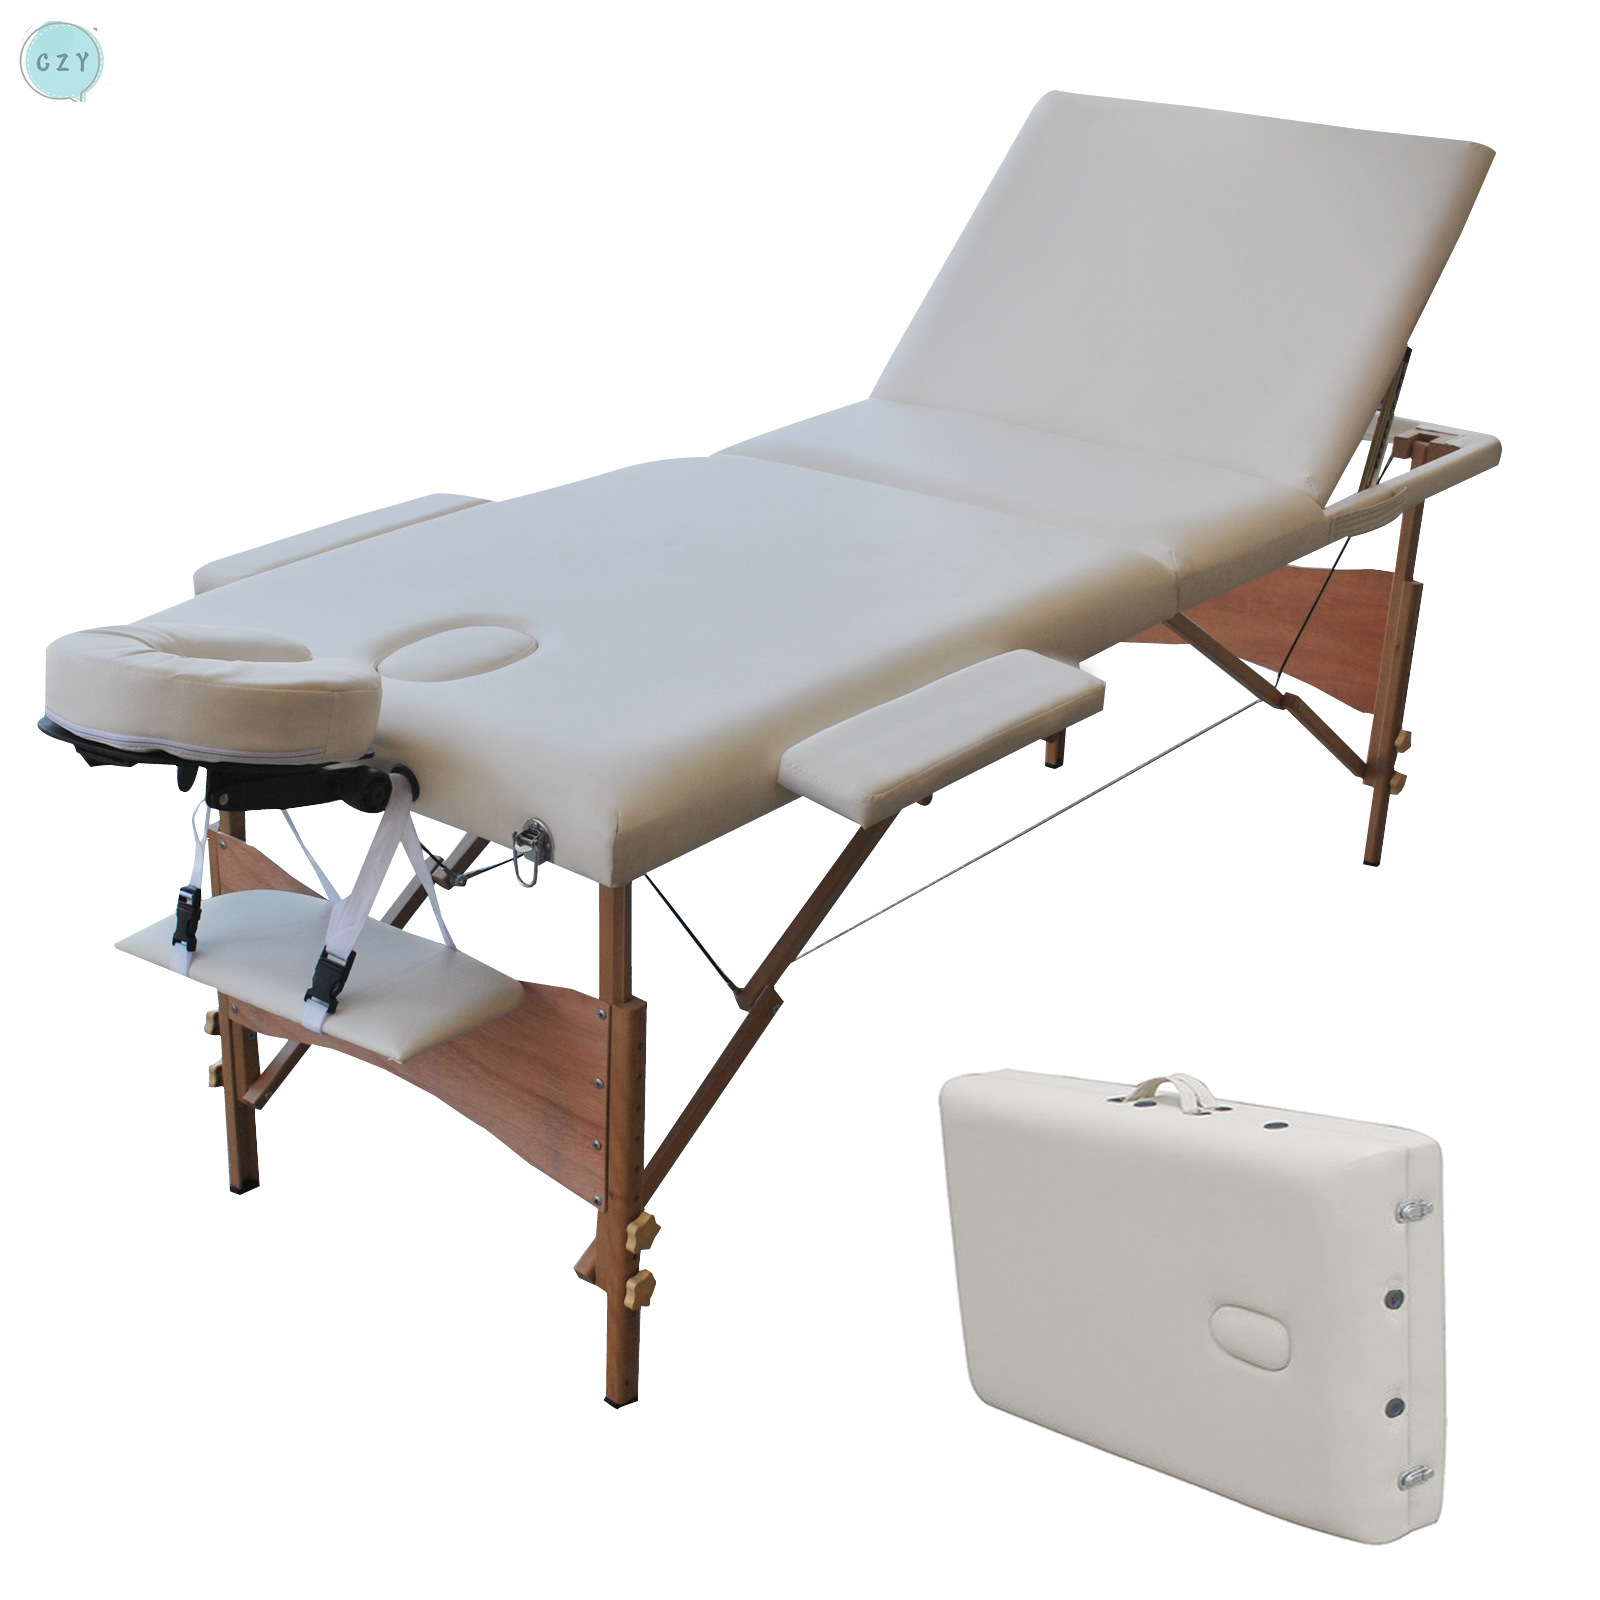 Uenjoy Folding Massage Table 84 Inchs Professional Massage Bed 3 Fold Lash Bed With Head Armrest Black White(China)